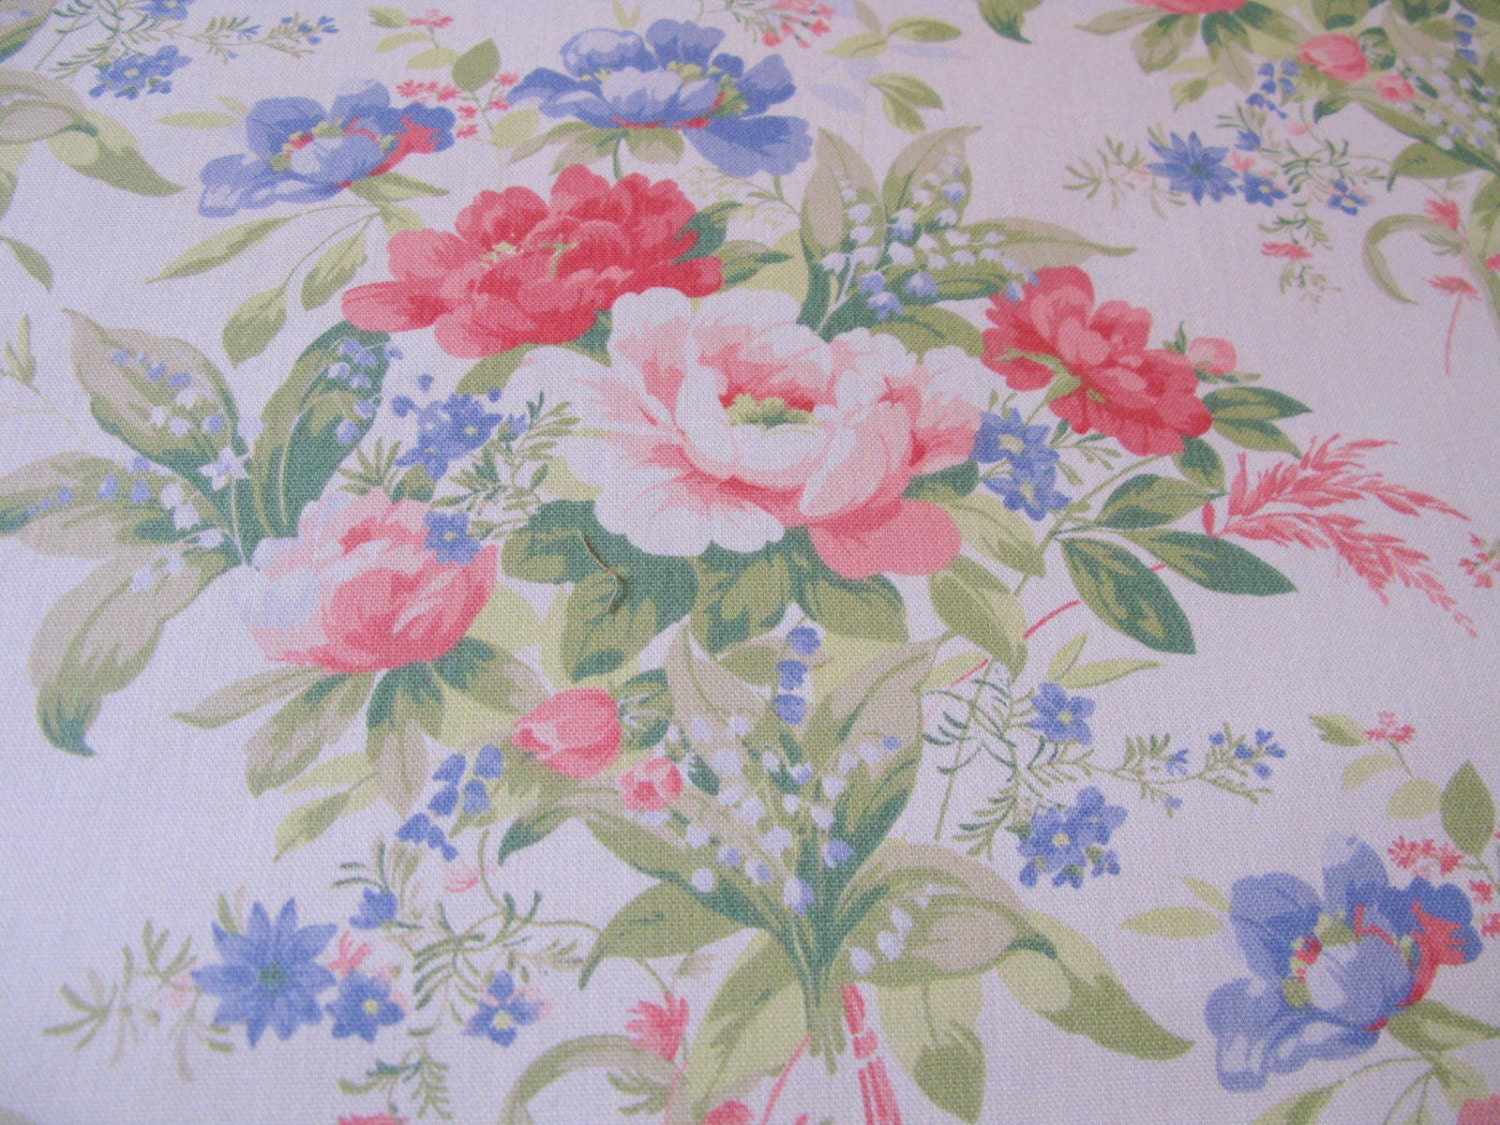 Shabby chic fabric 1 yard floral upholstery 56 wide for Shabby chic yard